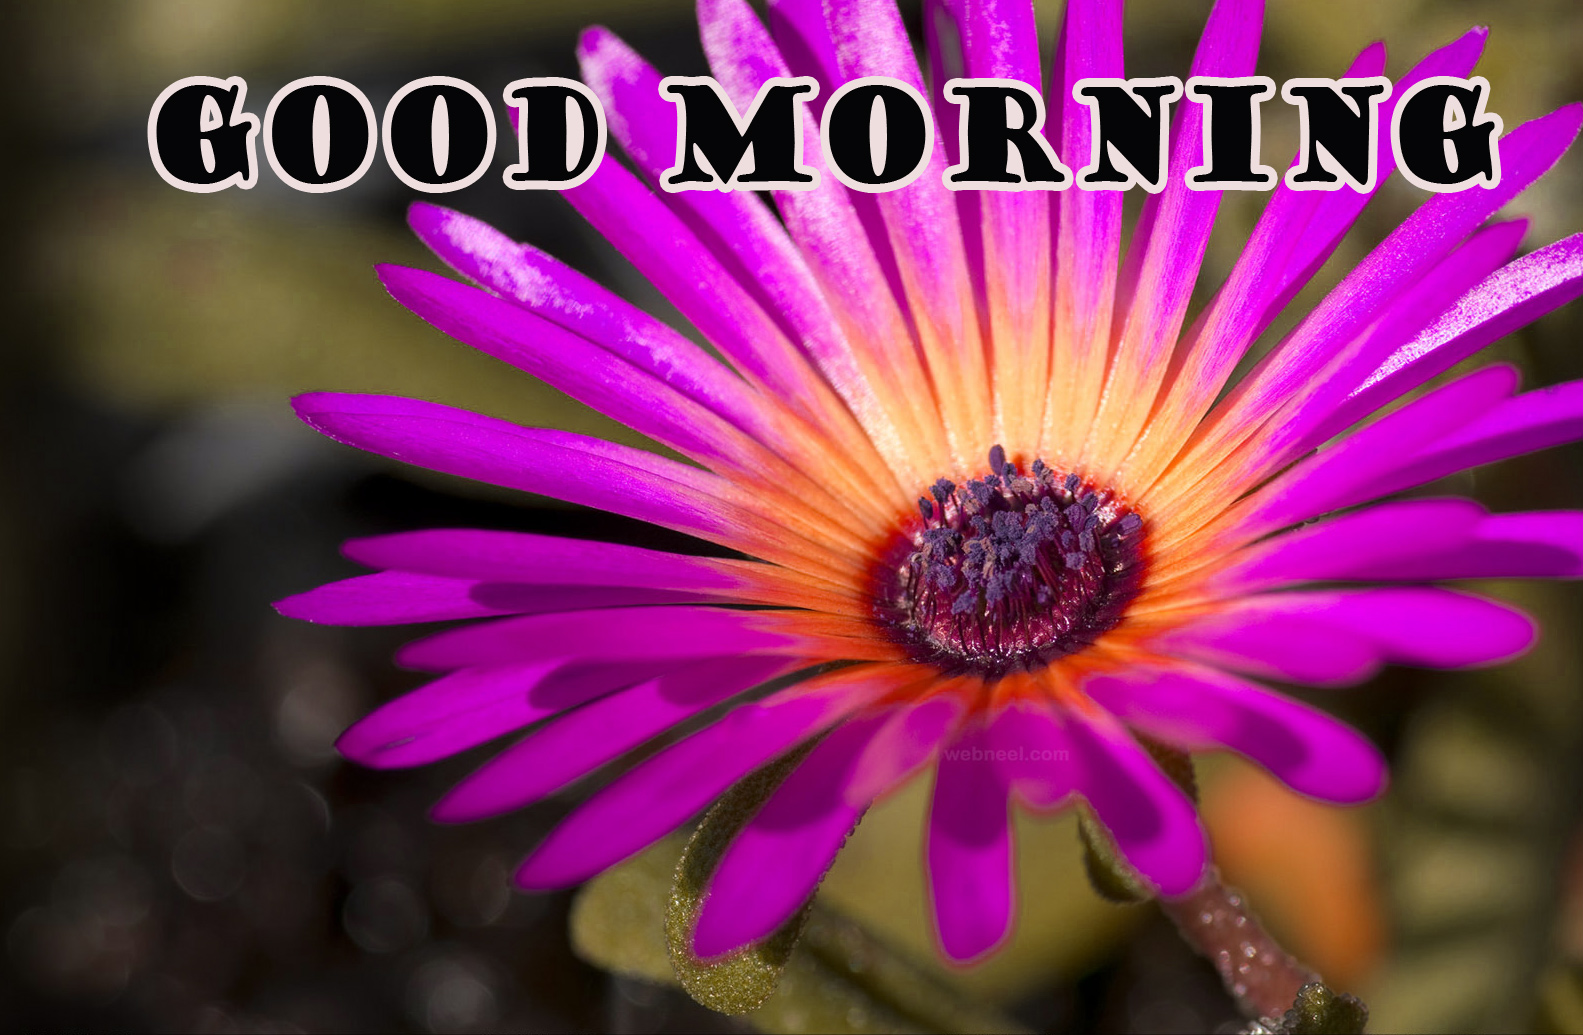 Special Wonderful Good Morning Pictures Photo Wallpaper For Facebook